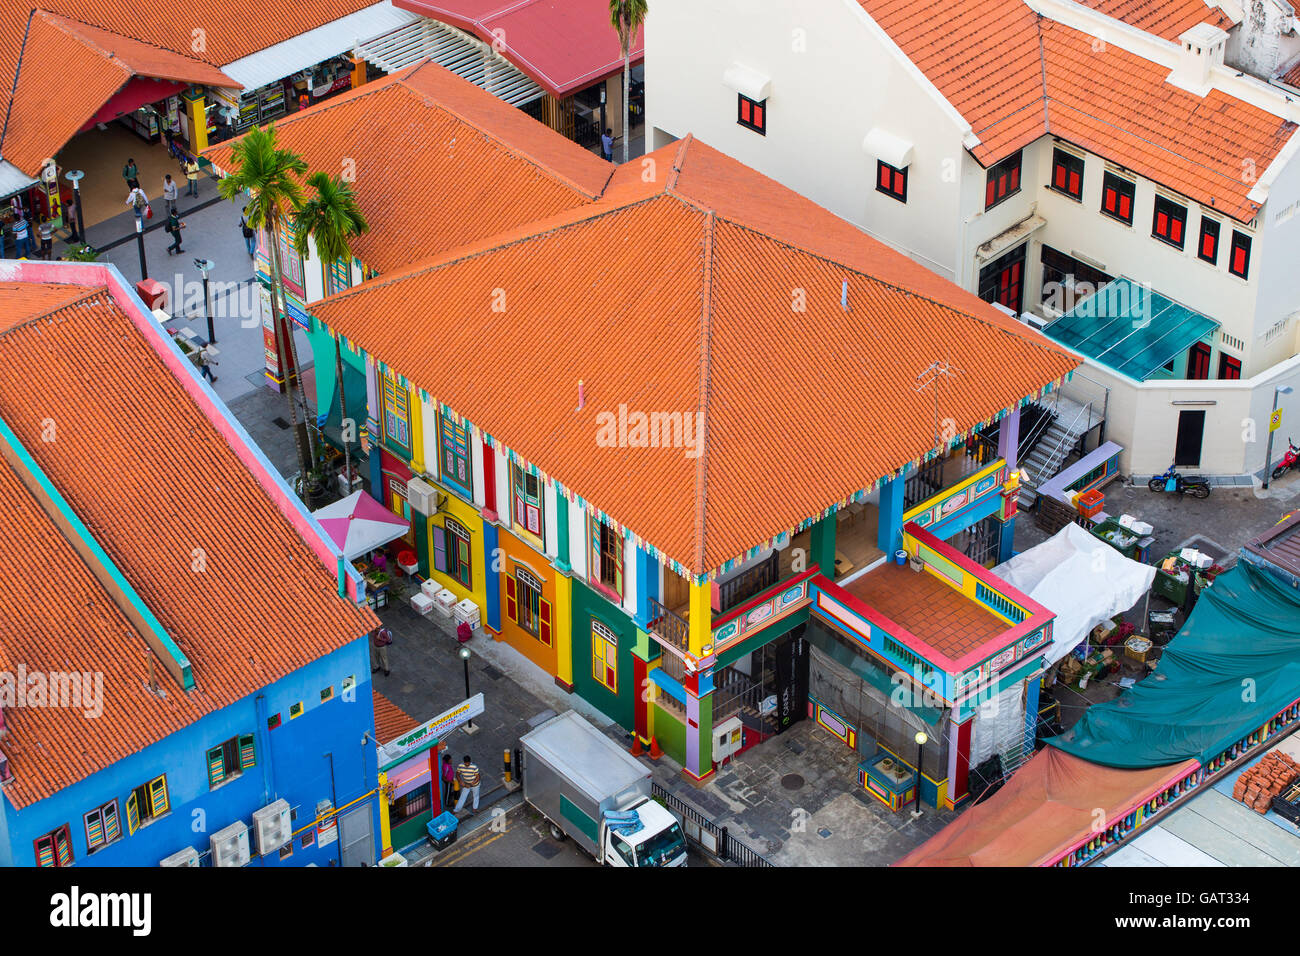 Aerial view of colourful house in the neighbourhood located at Little India, Singapore. - Stock Image